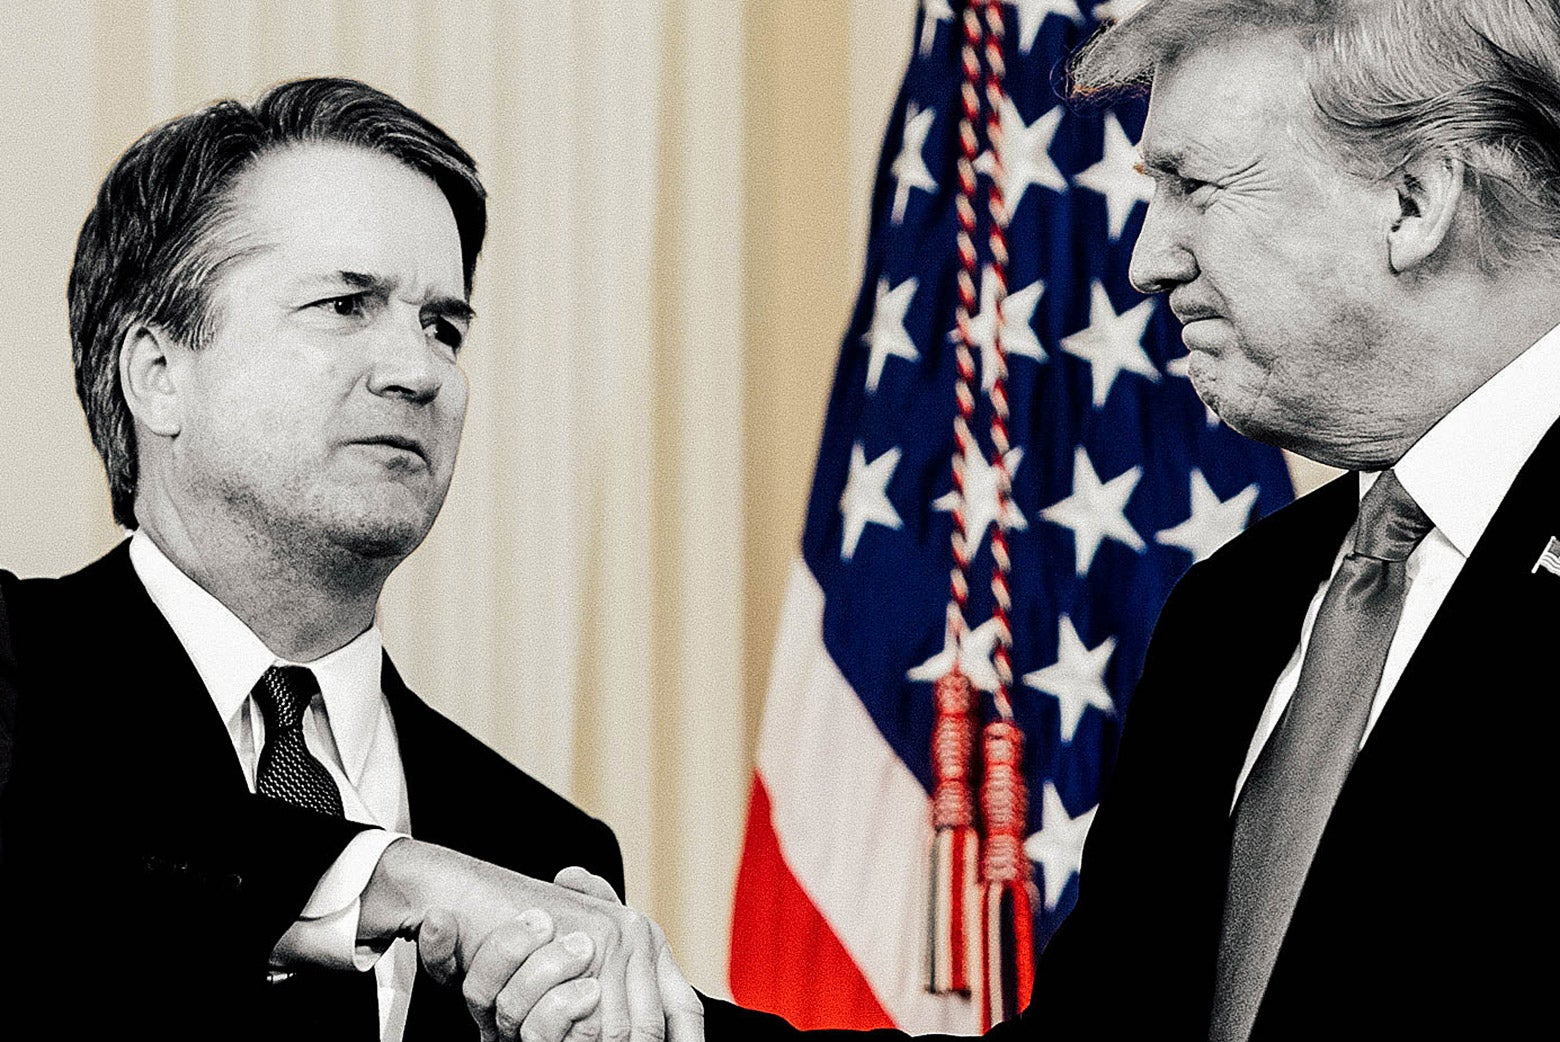 Kavanaugh and Trump in black and white against a full-color background